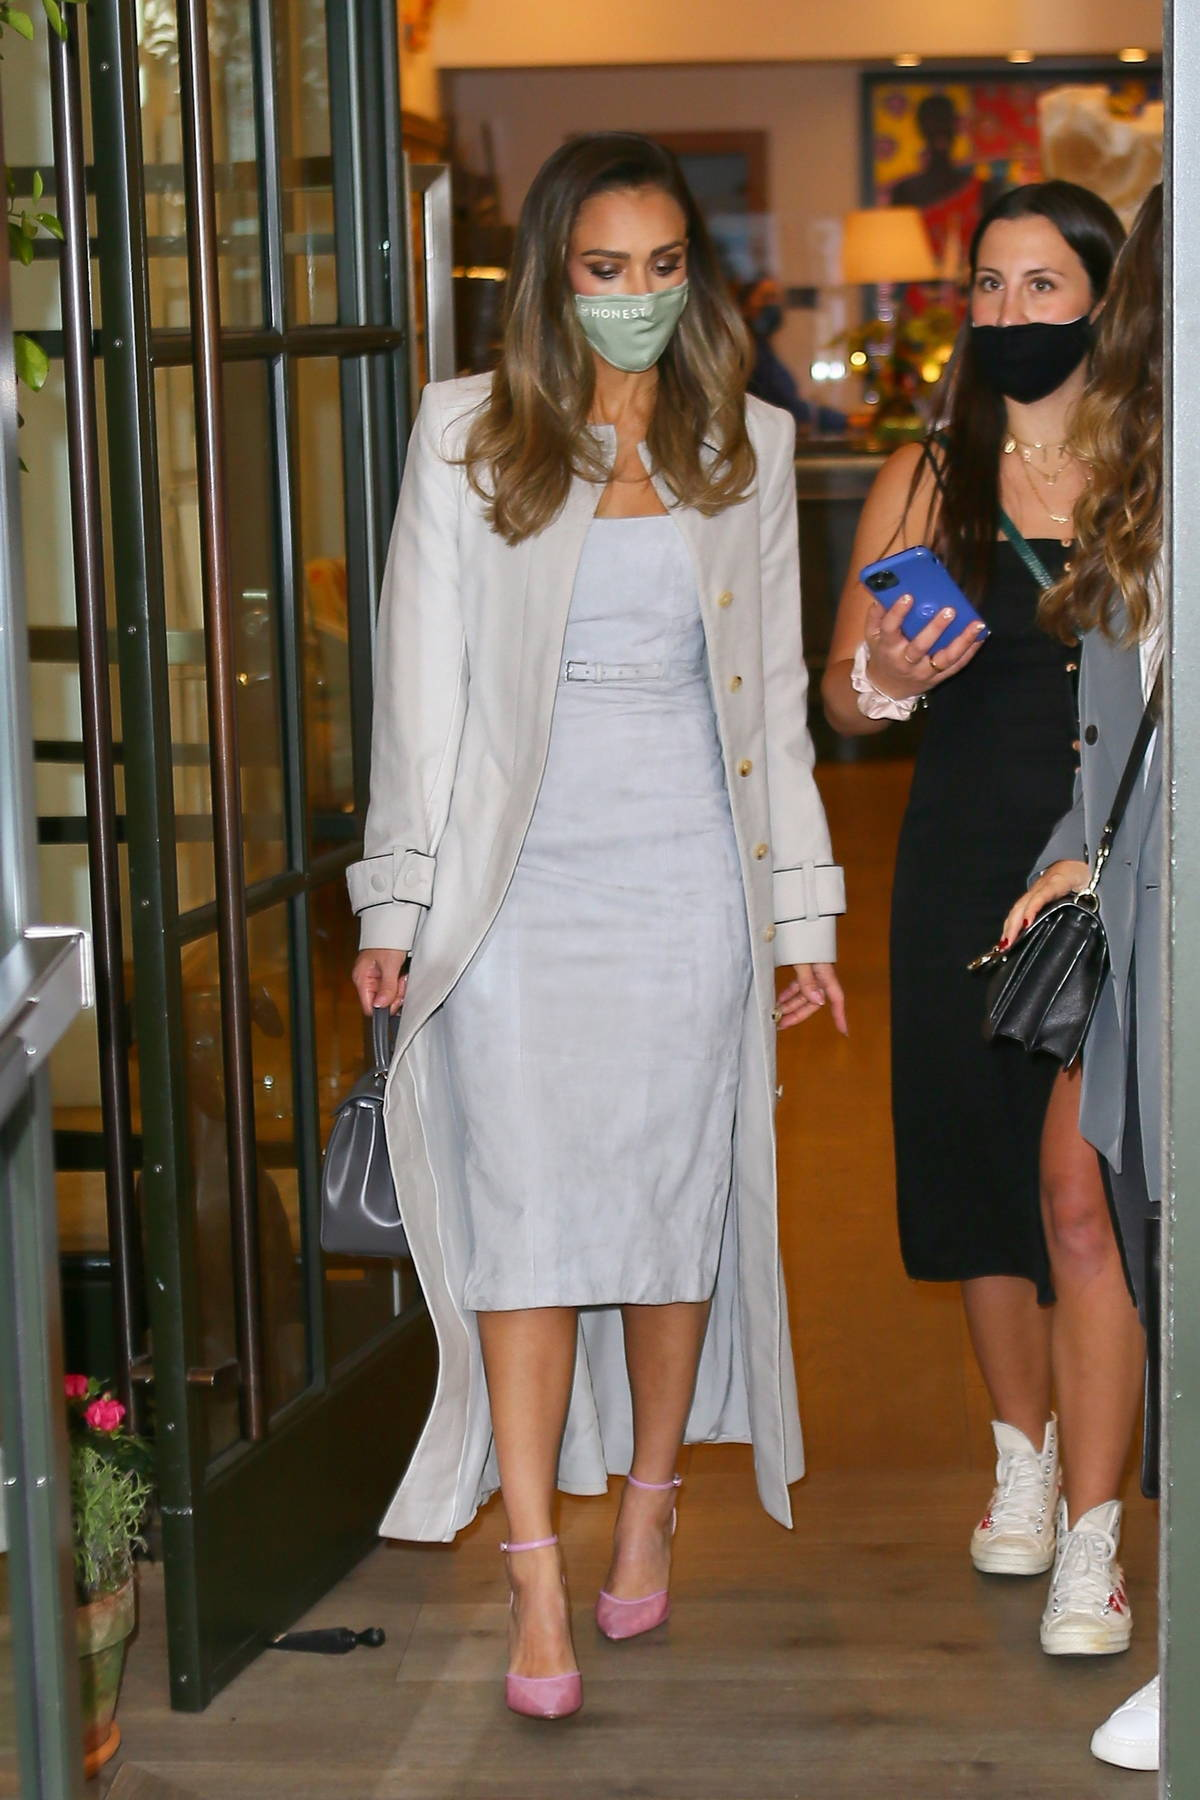 Jessica Alba looks elegant in a light blue dress with an off-white overcoat as she heads out in New York City